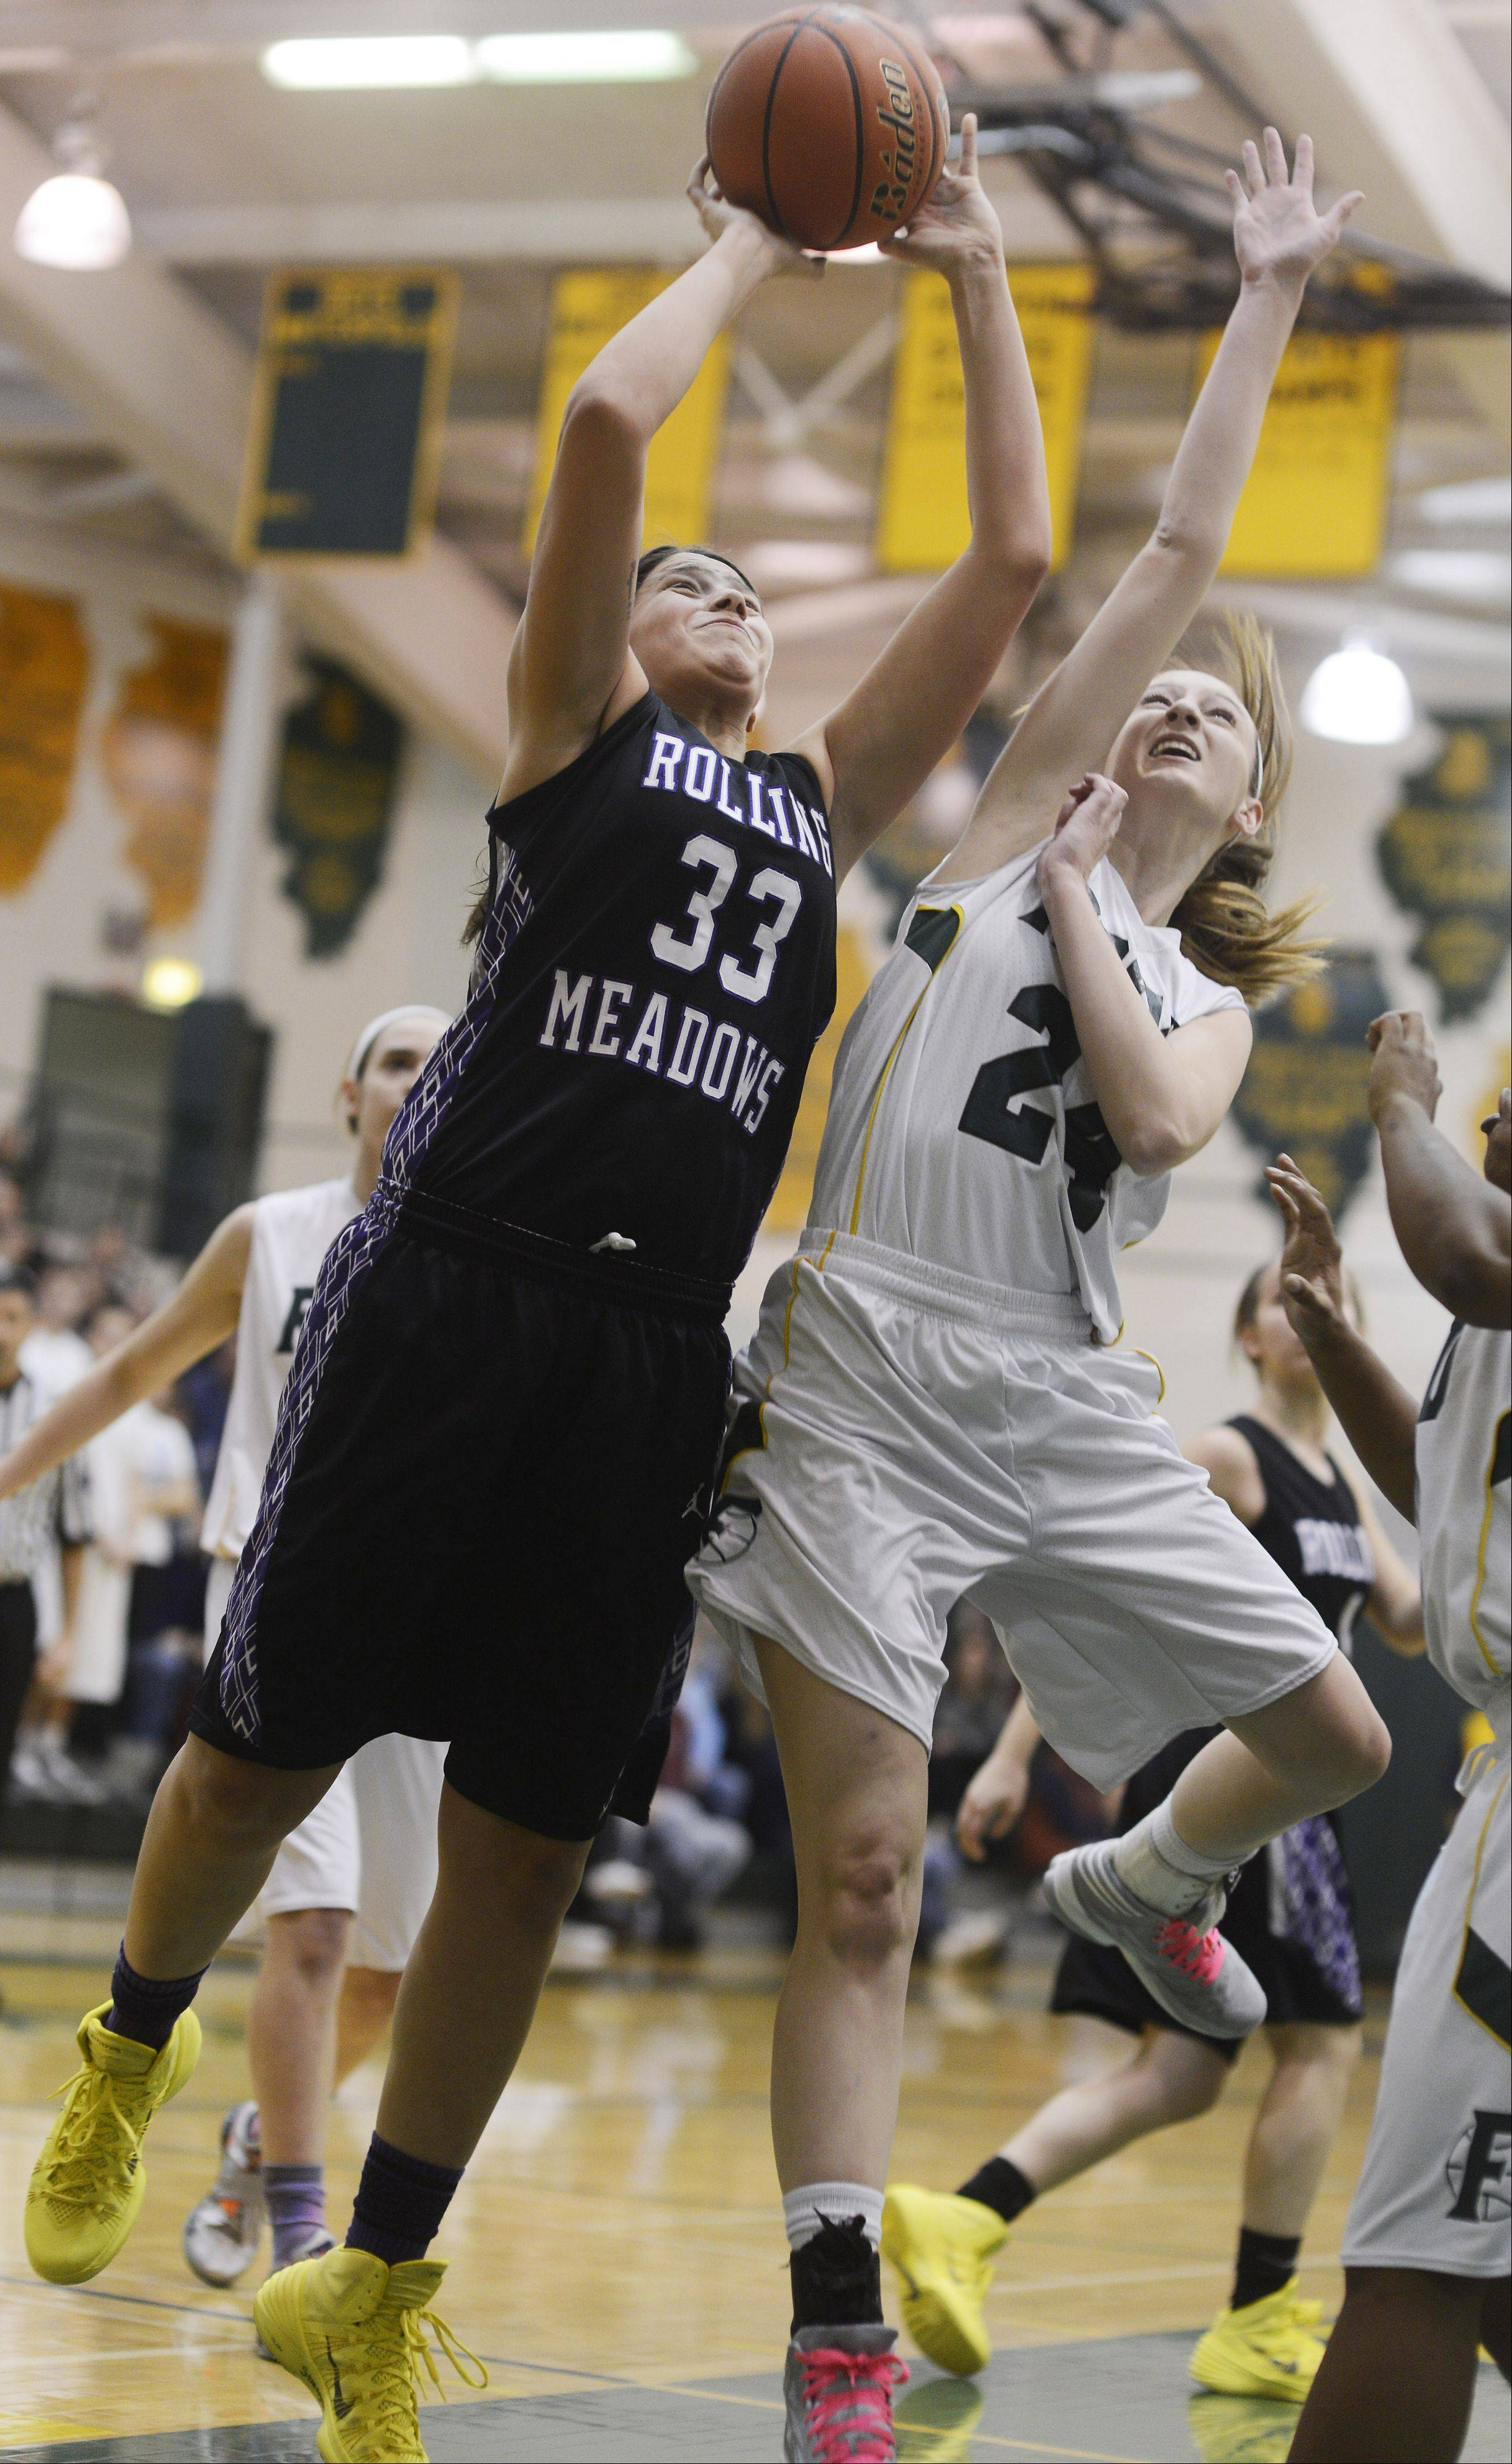 Rolling Meadows' Ashley Montanez, left, makes a strong move to the basket as Fremd's Hanna Labarge attempts the block.